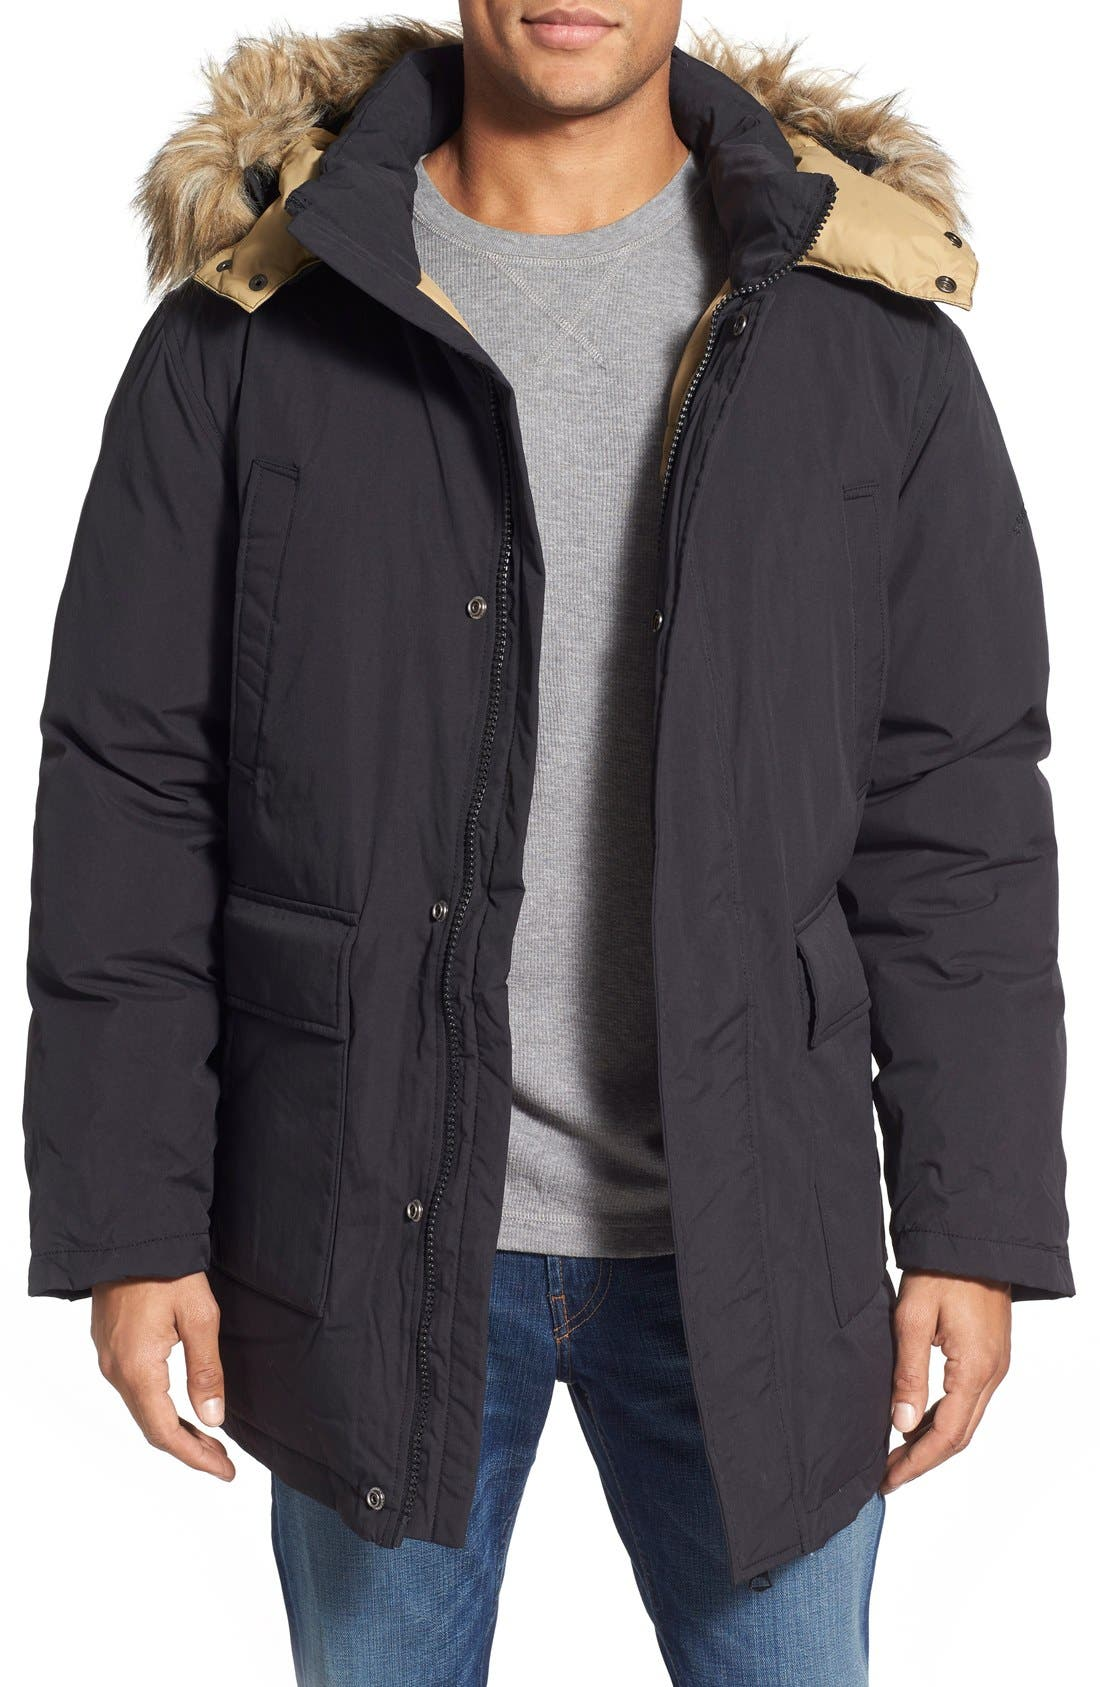 Alternate Image 1 Selected - Schott NYC 'Iceberg' Water Resistant Down Parka with Faux Fur Trim